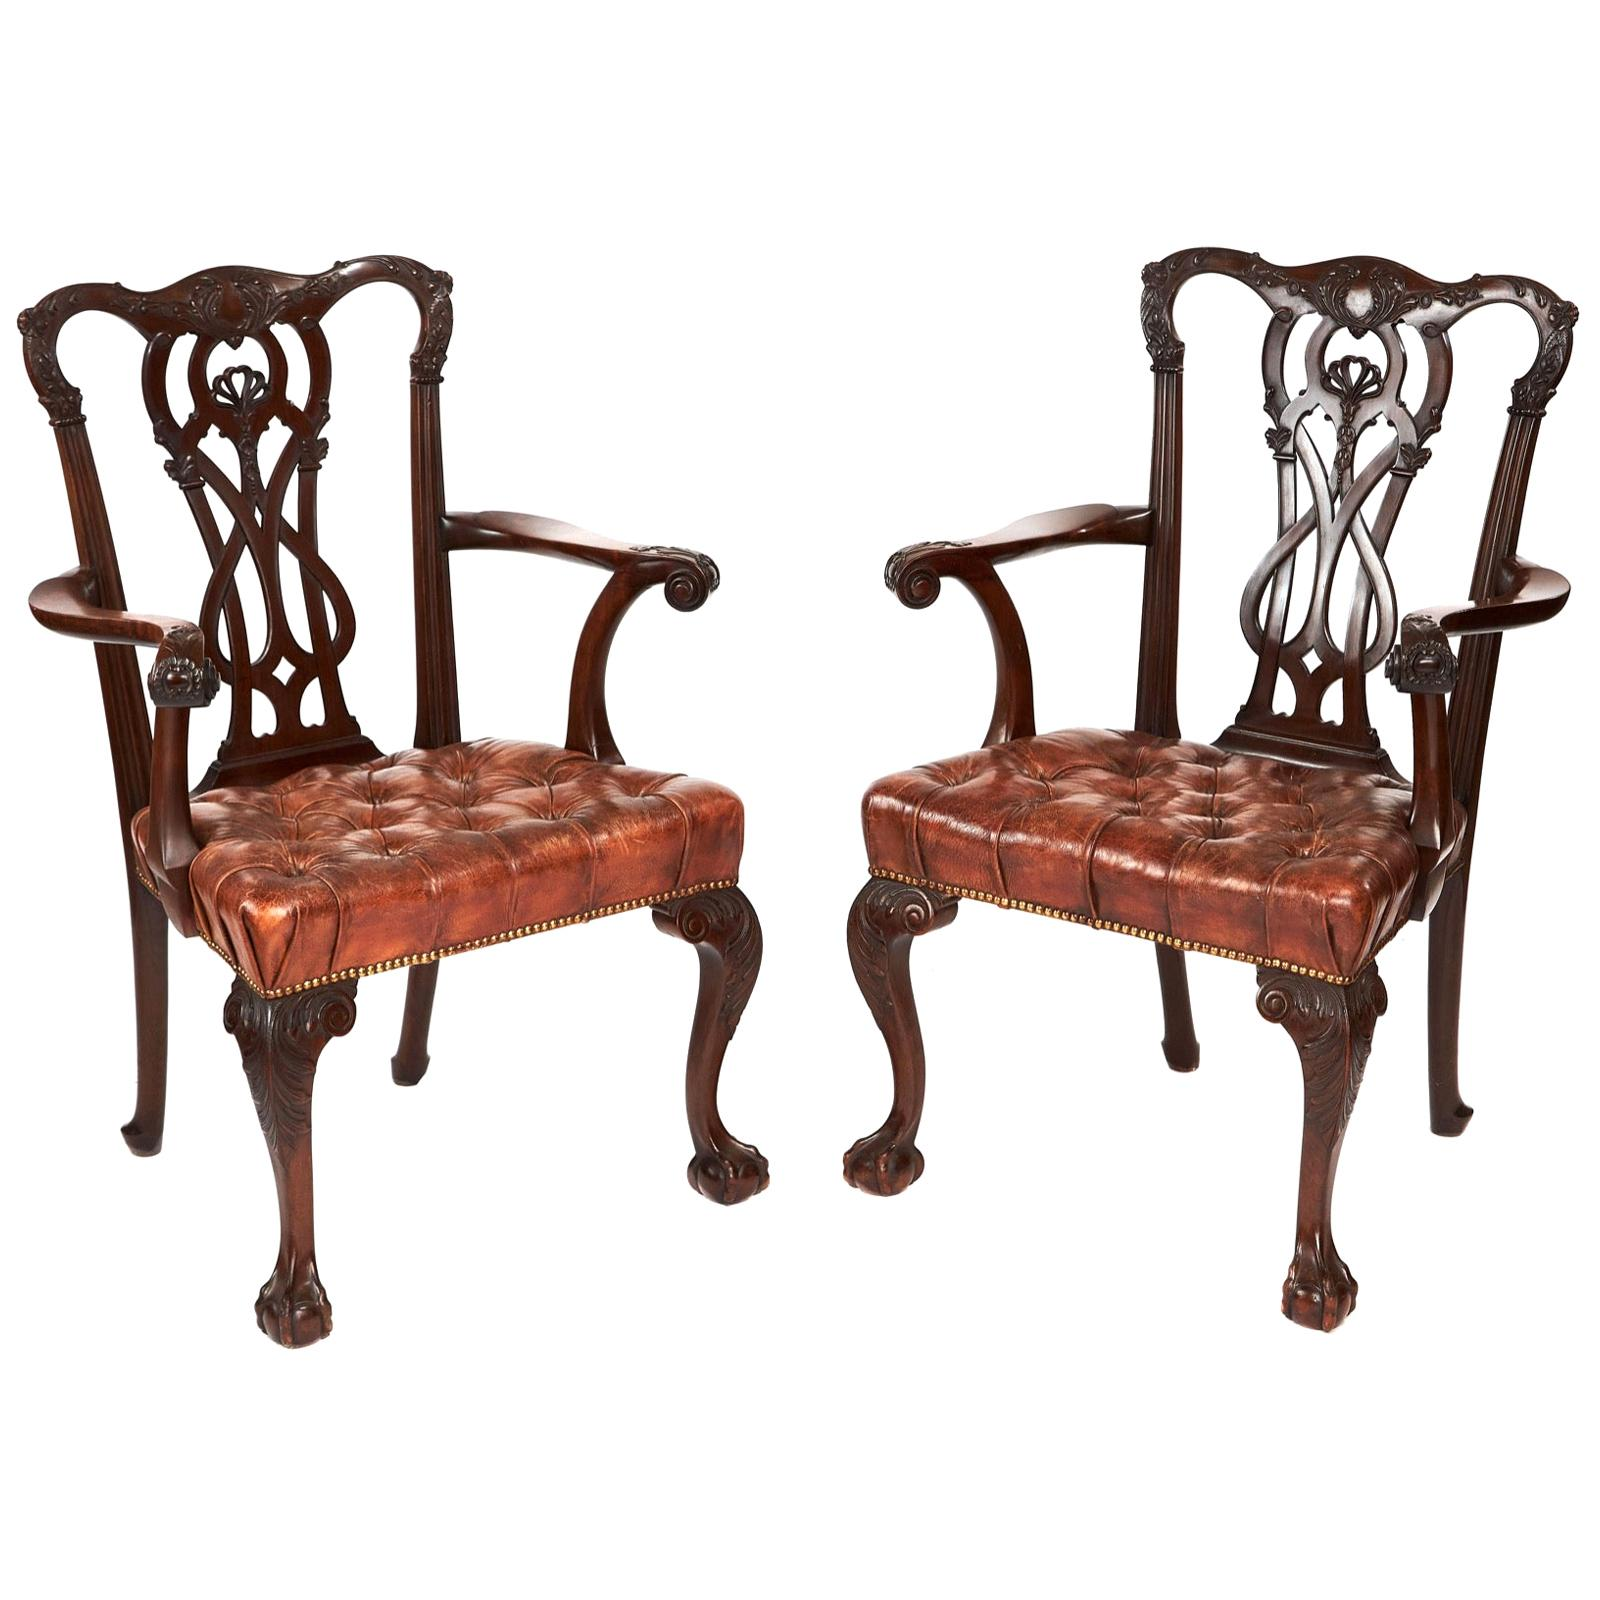 Antique 19th Century Pair of Mahogany Chippendale Style Desk/Elbow Chairs